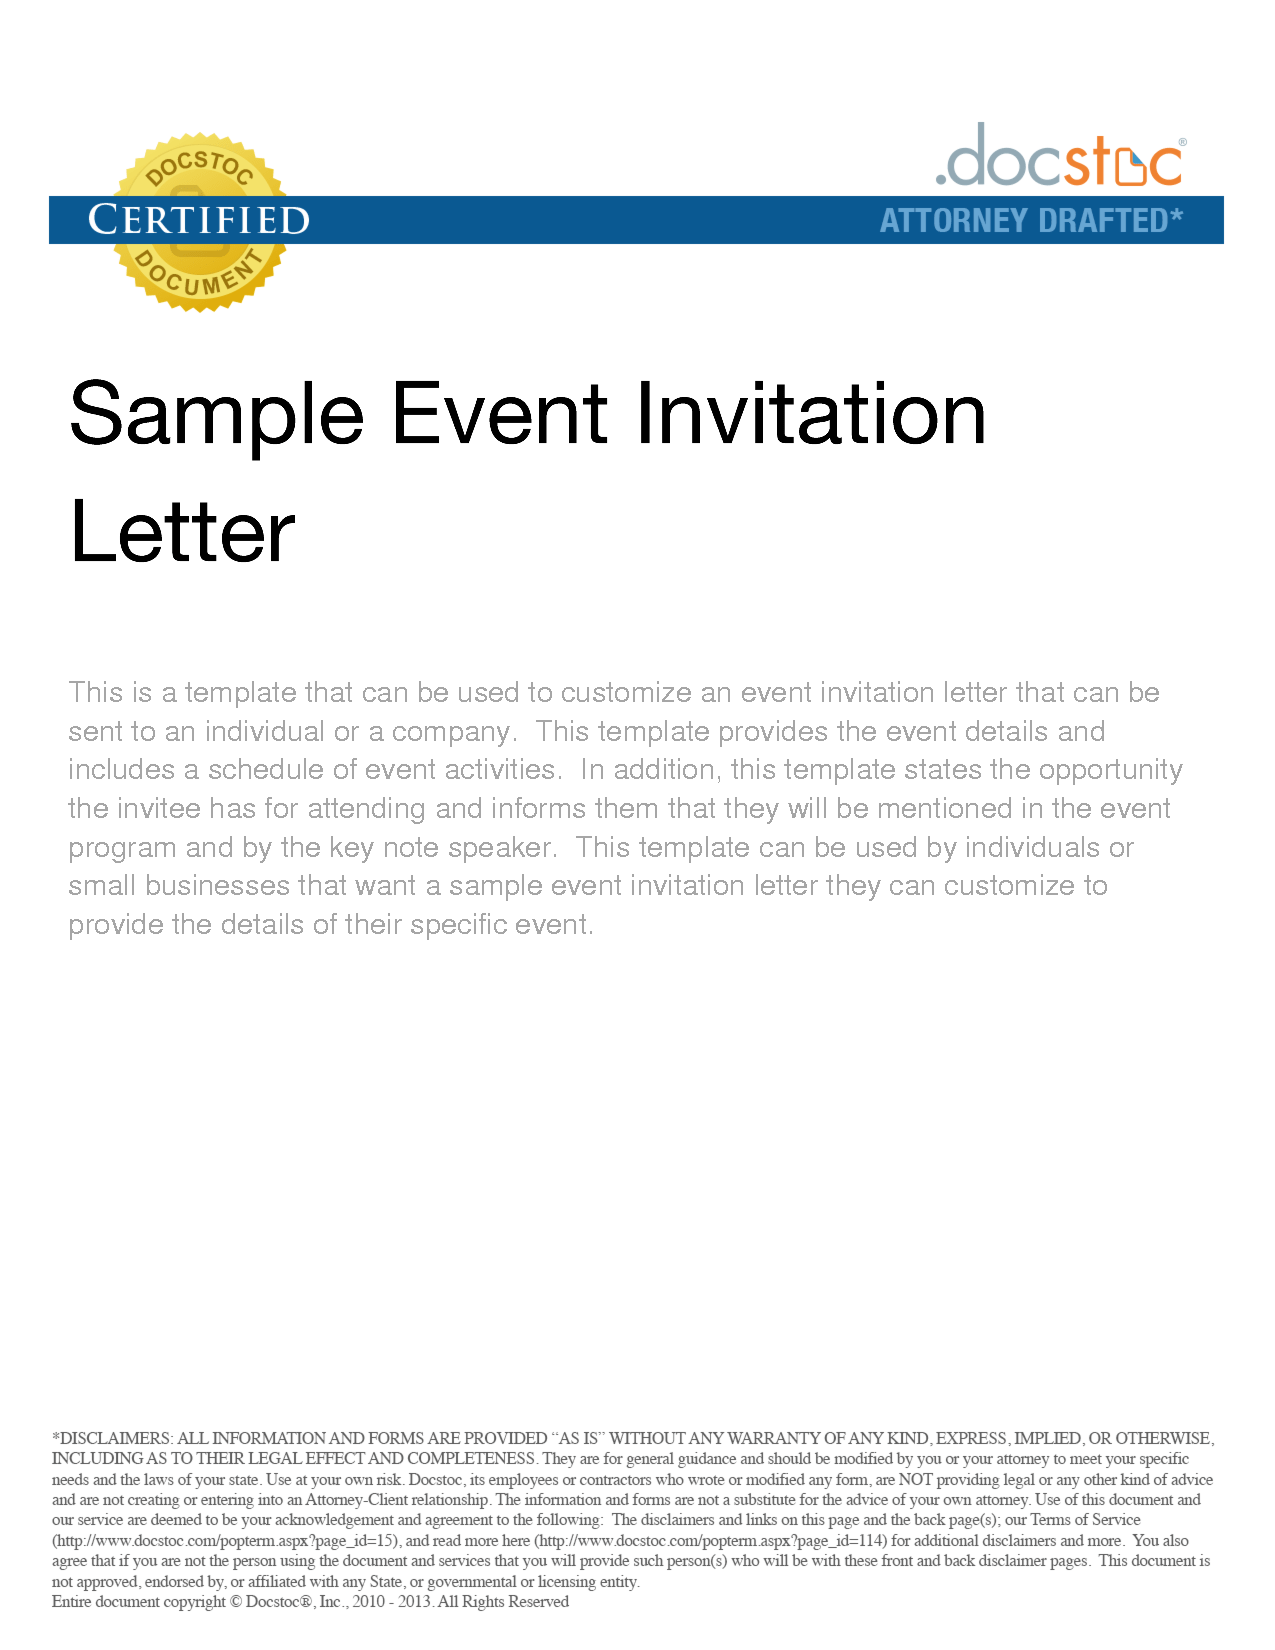 invitation letter sample for corporate event sample customer invitation letter sample for corporate event sample business event invitation letter sample letters sample of